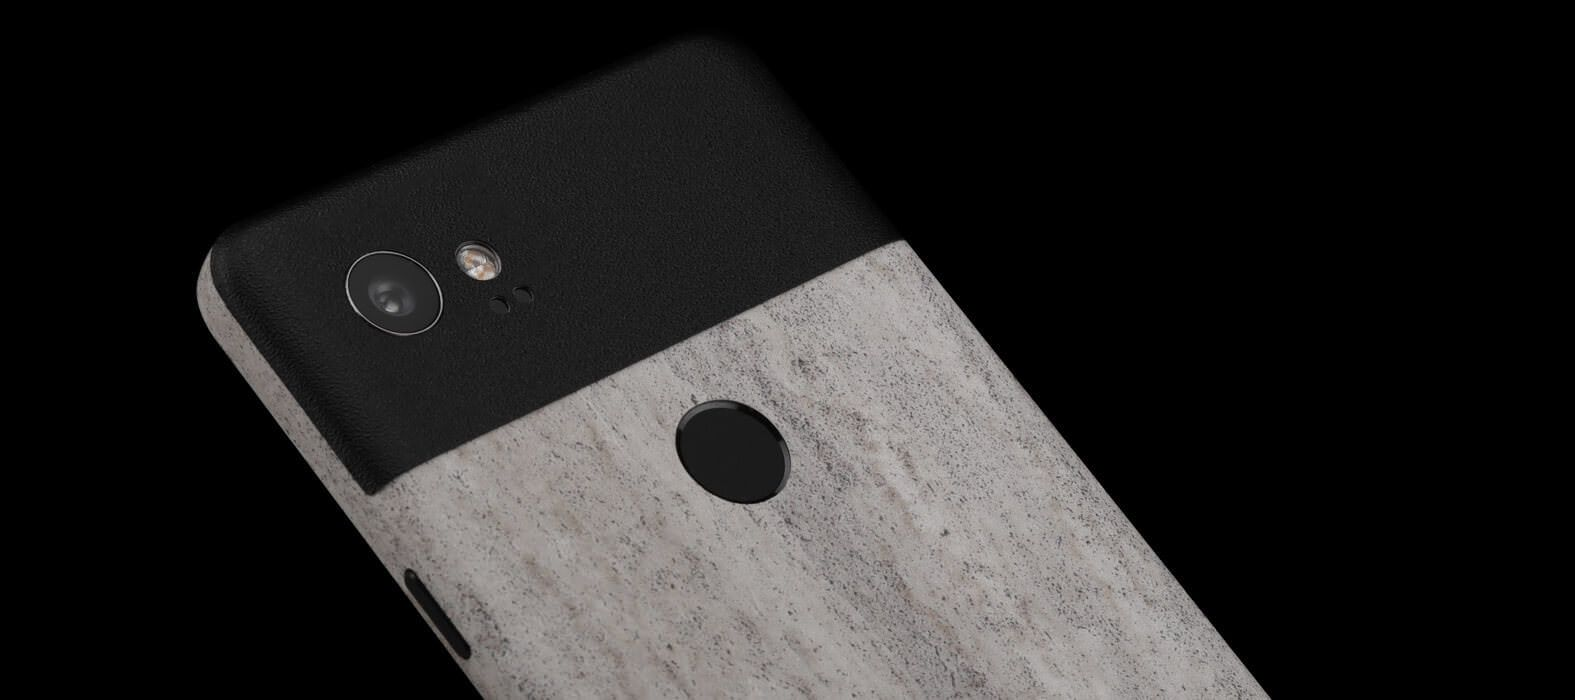 Pixel 2 XL Skins Concrete Split Wraps & Decals